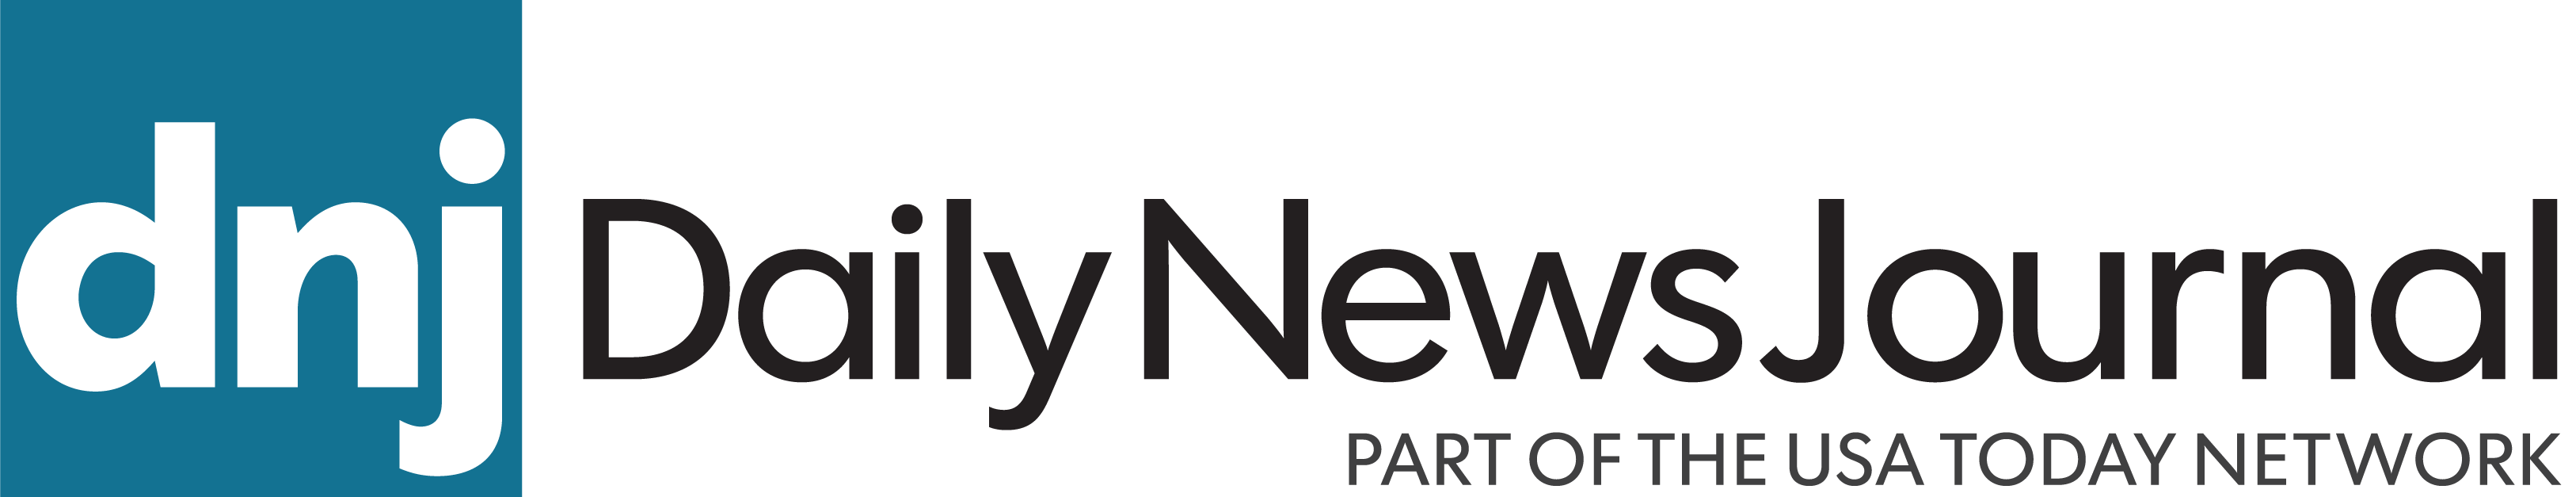 Library visitors can explore the Daily News Journal archives online at any branch